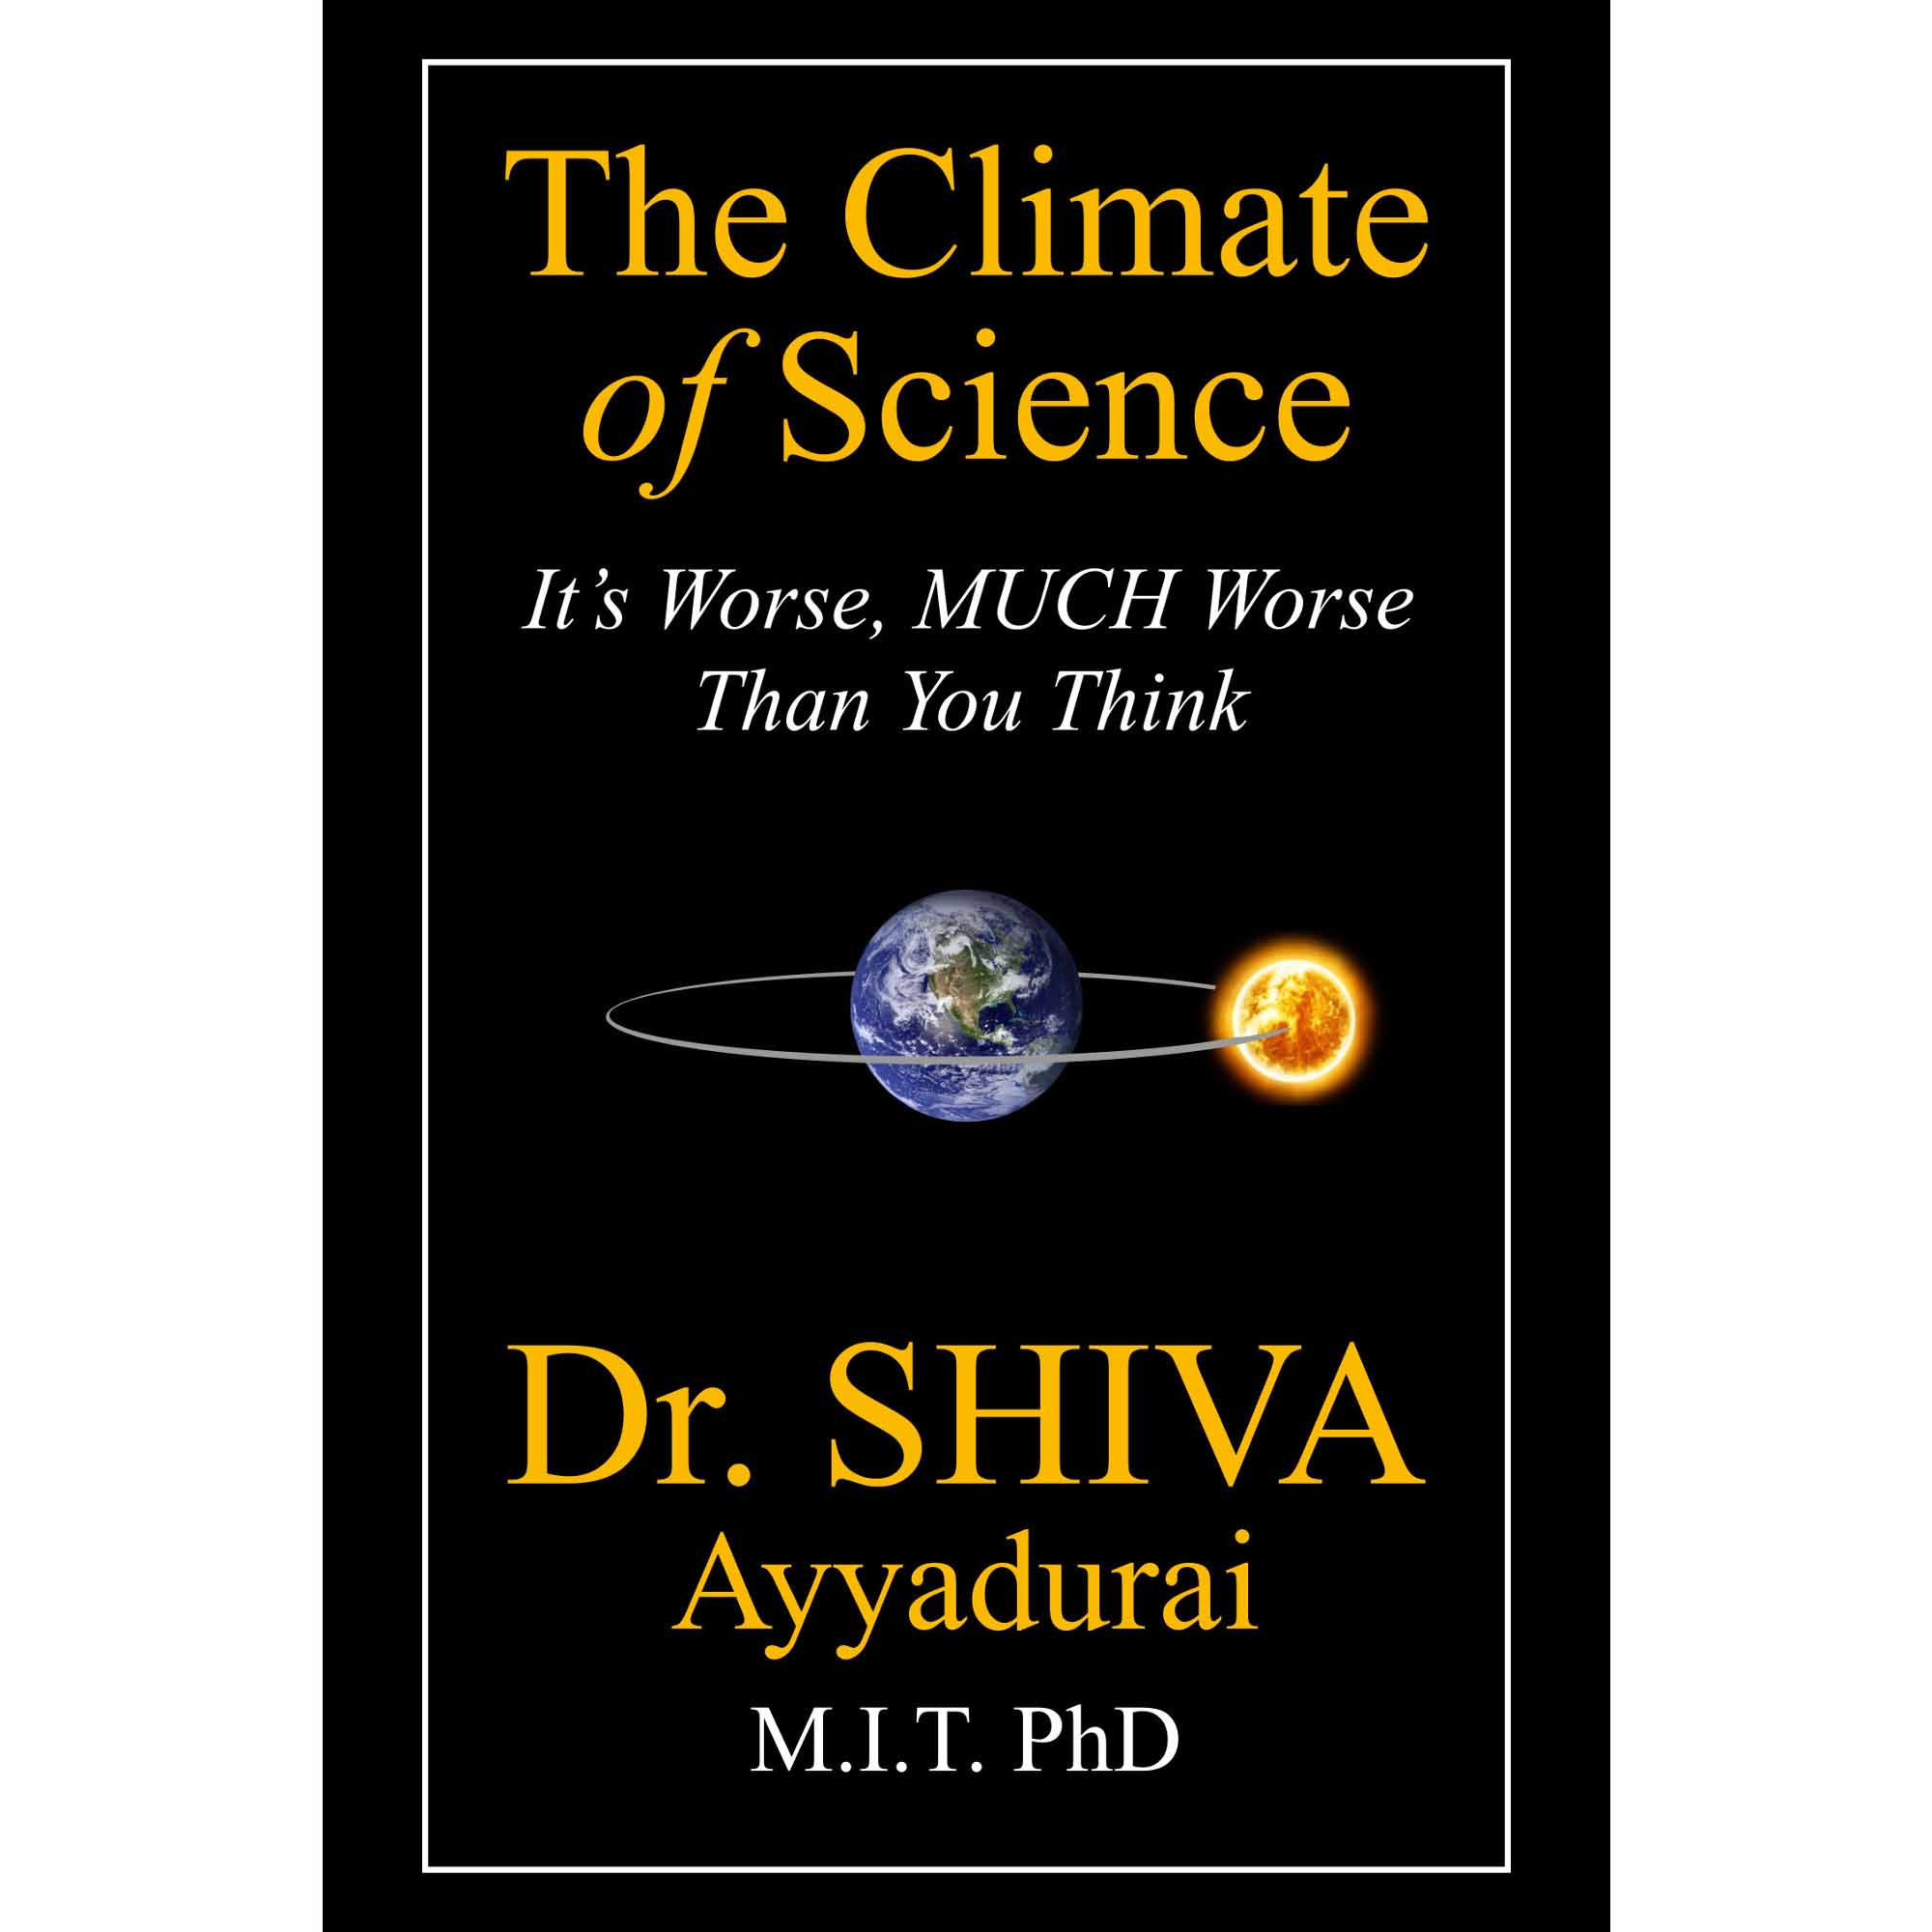 The Climate of Science by Dr. Shiva Ayyadurai